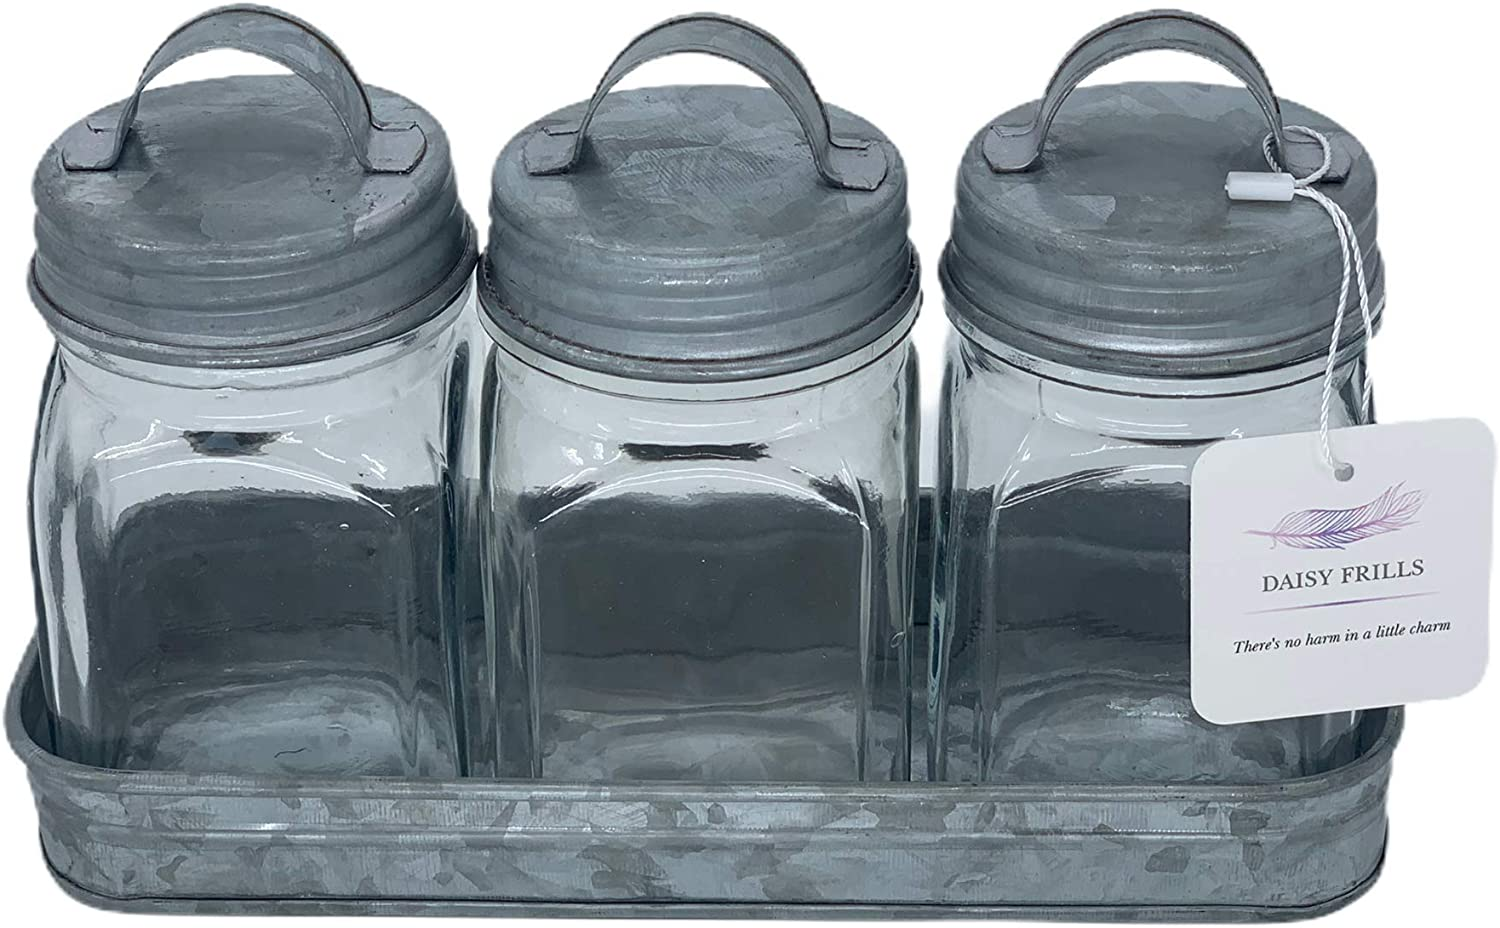 Decorative Jars with Galvanized Challenge the lowest price of Japan Brand Cheap Sale Venue ☆ Tray Set 3